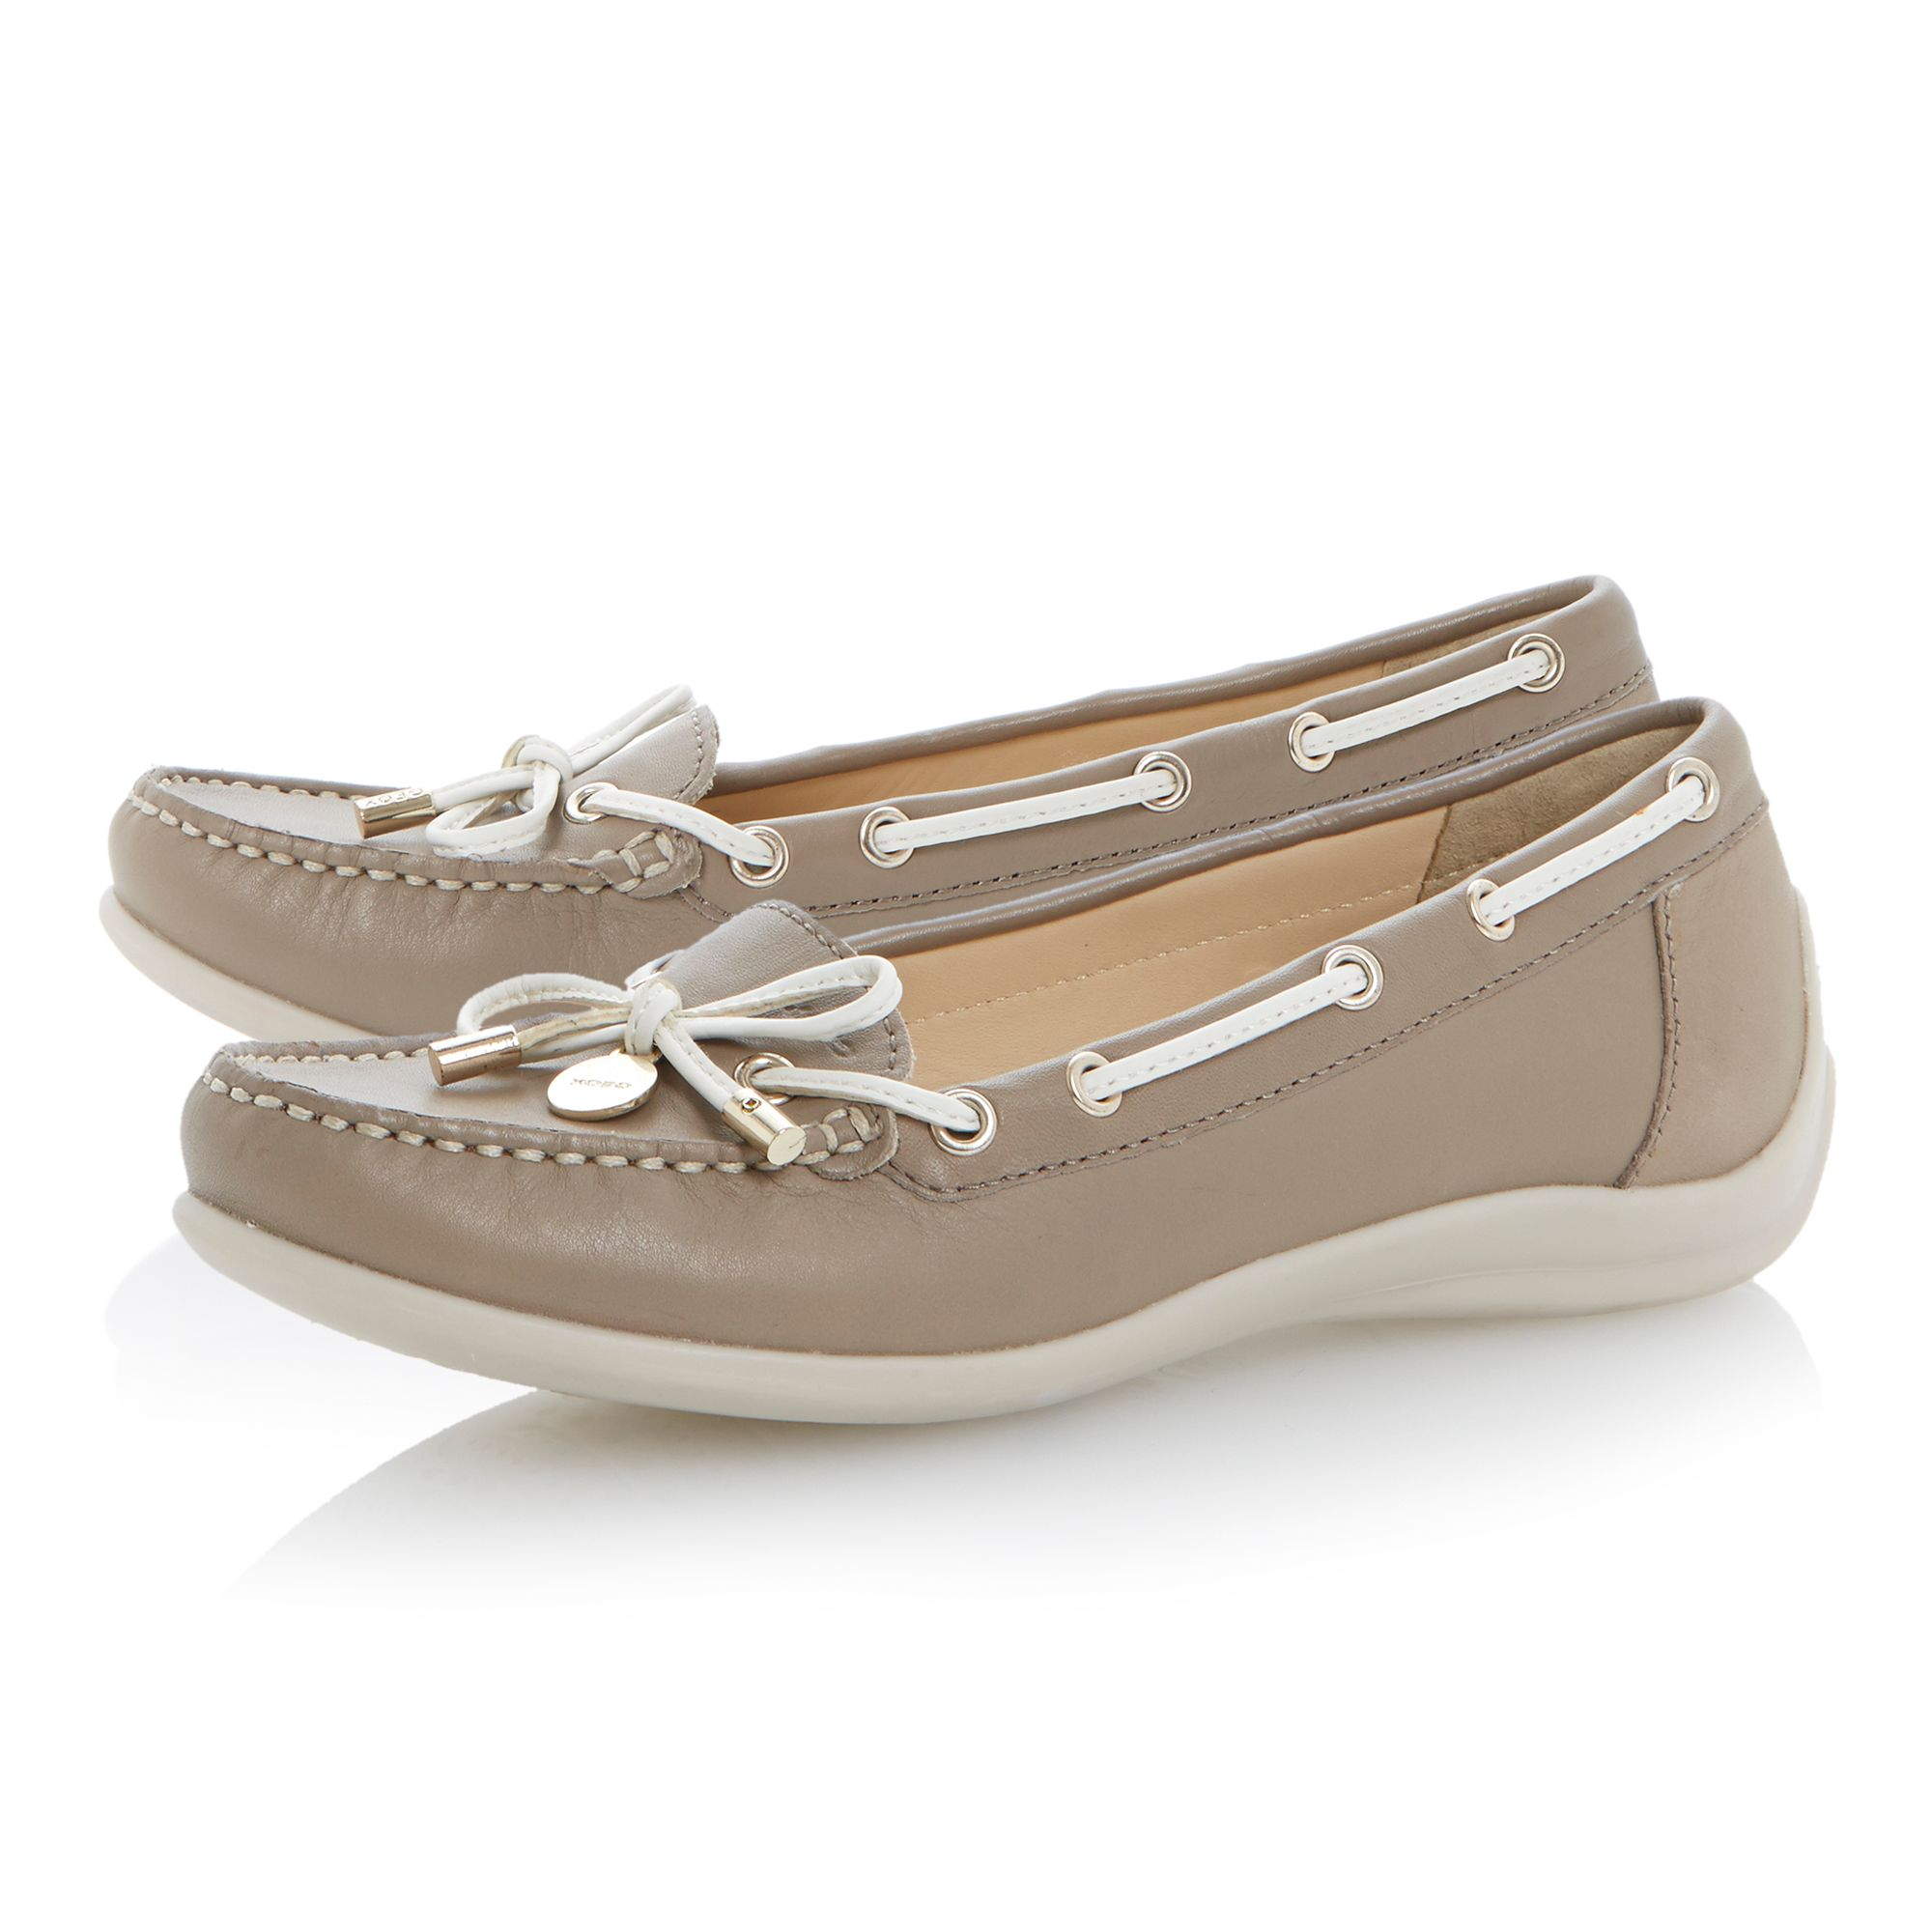 Yuki velcro leather flat round toe boat shoes